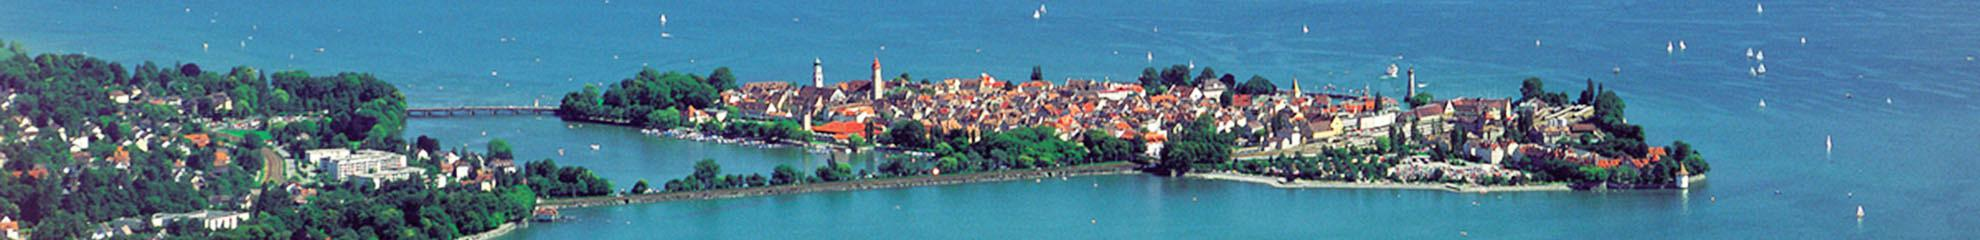 Sommercamp in Lindau